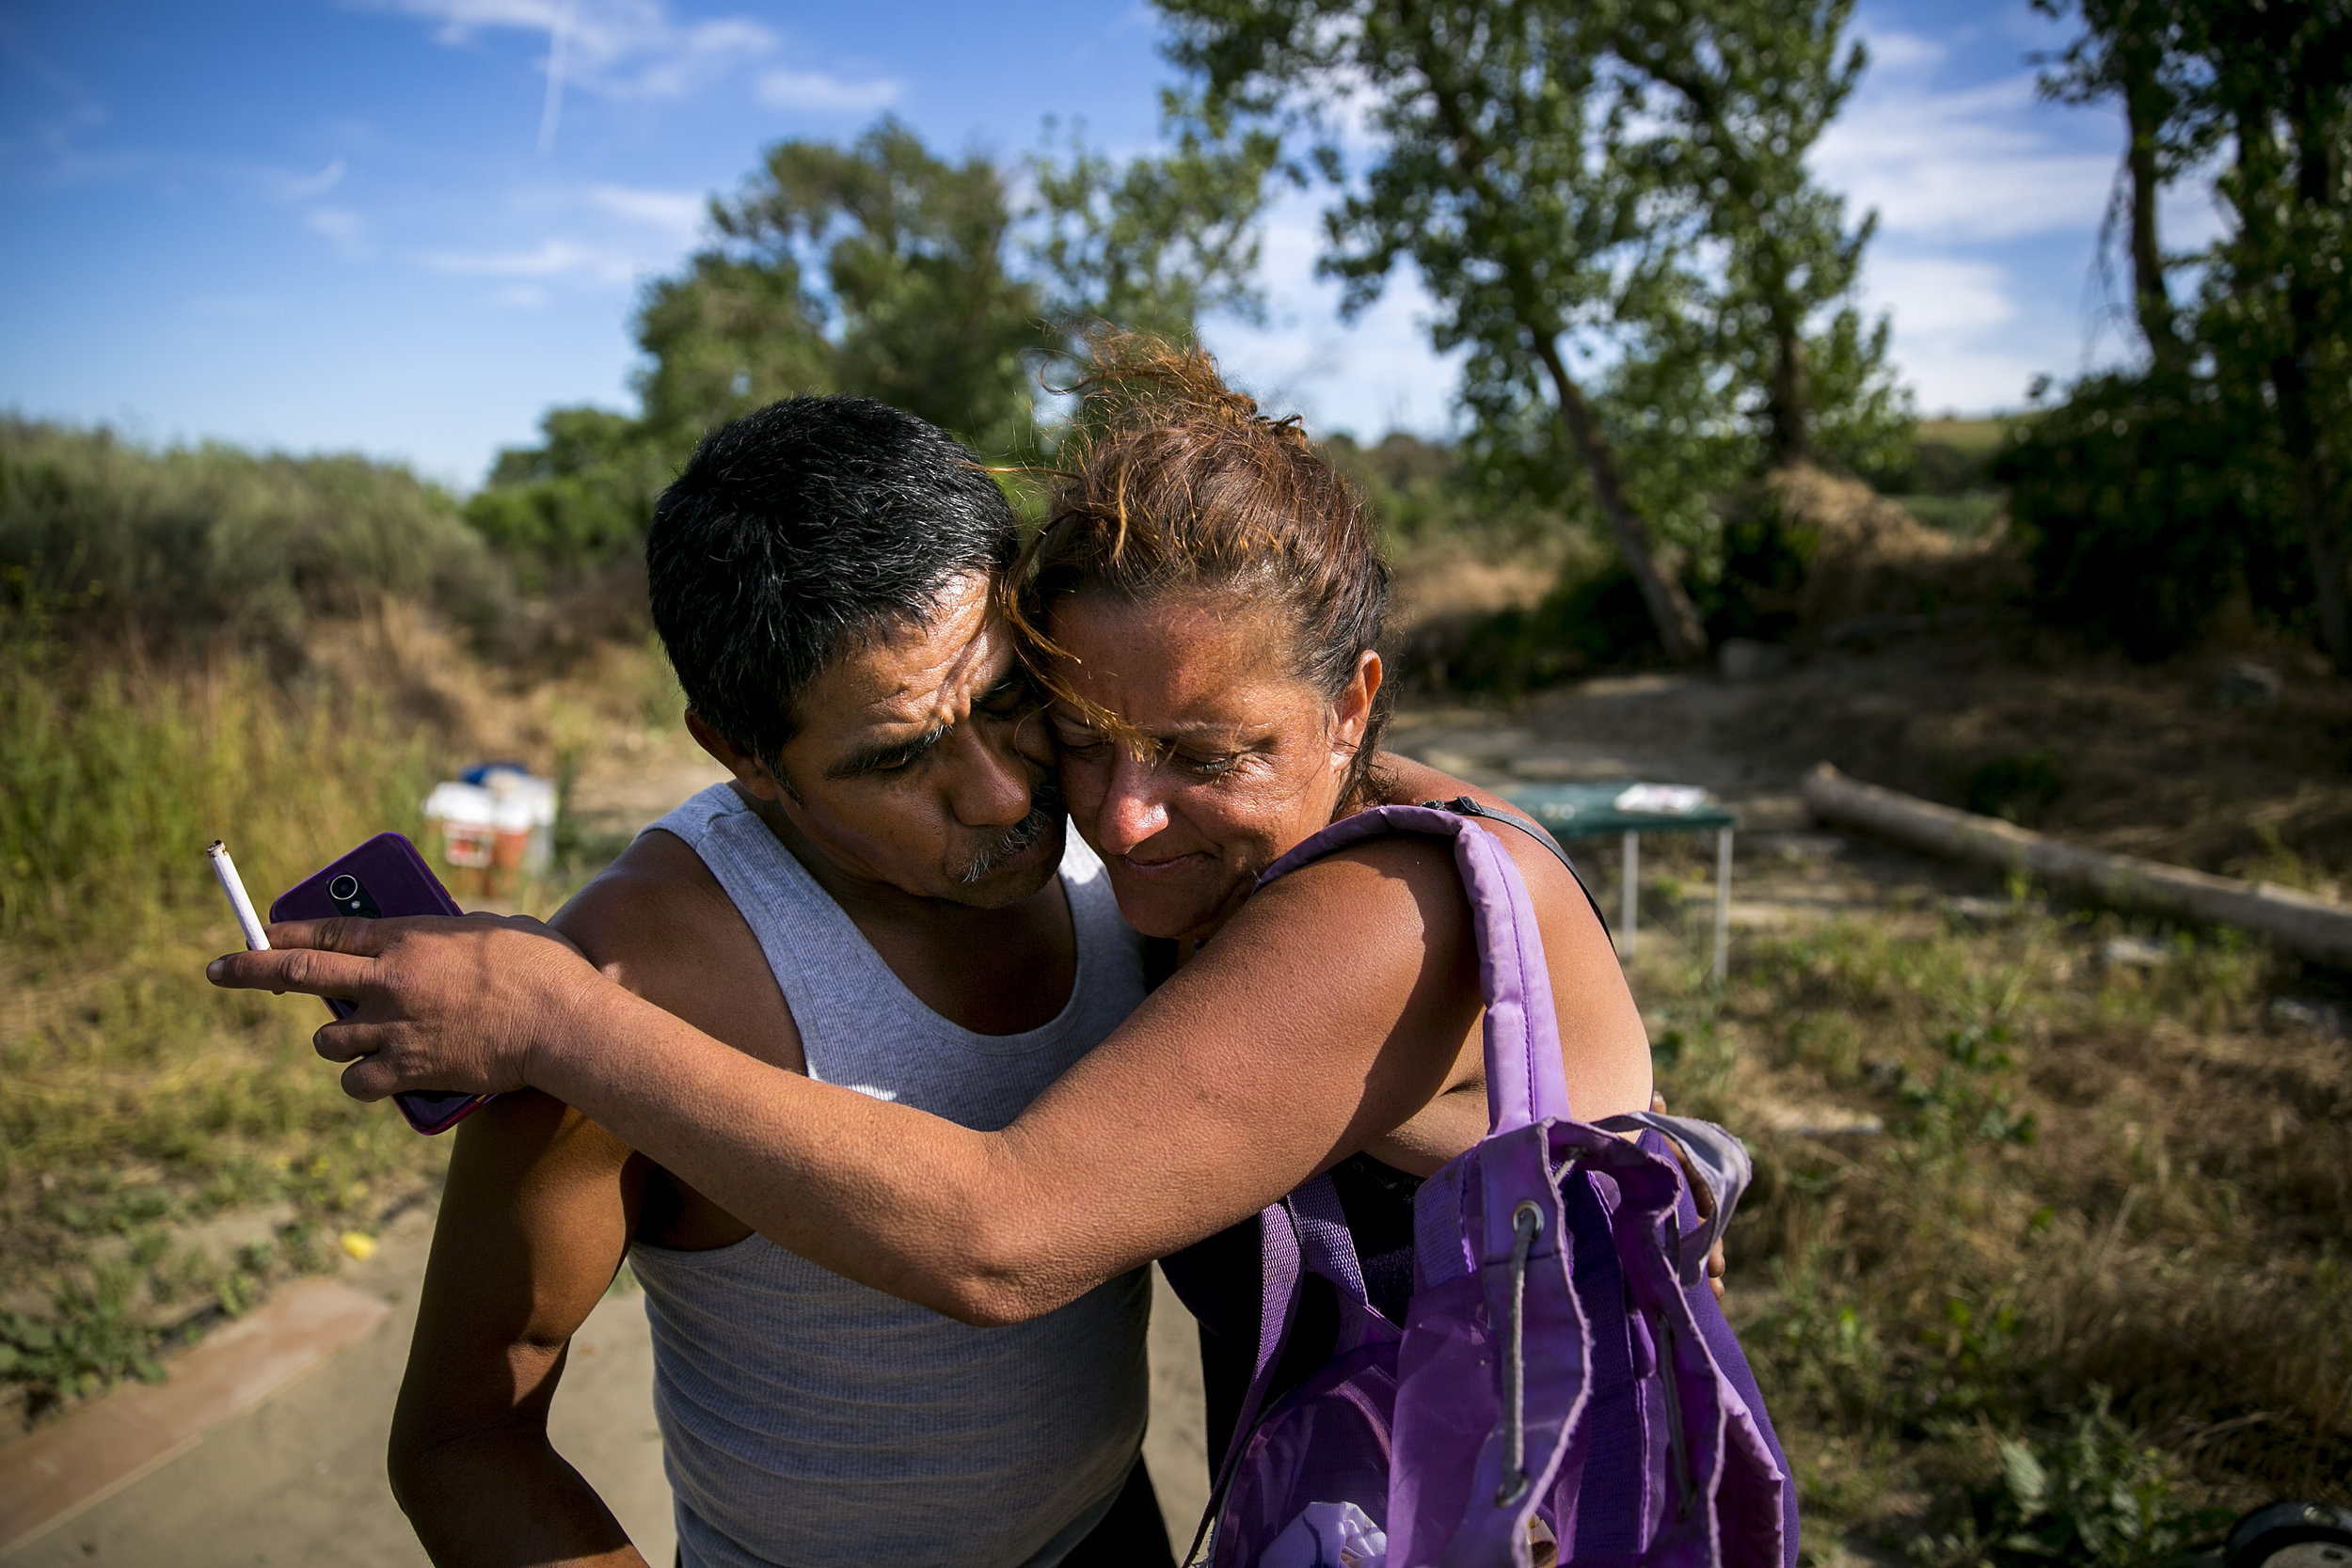 Coulter greets her friend Daniel Estrada, who she wound up staying with in the encampment later that evening, as she moves her belongings to the river bed.